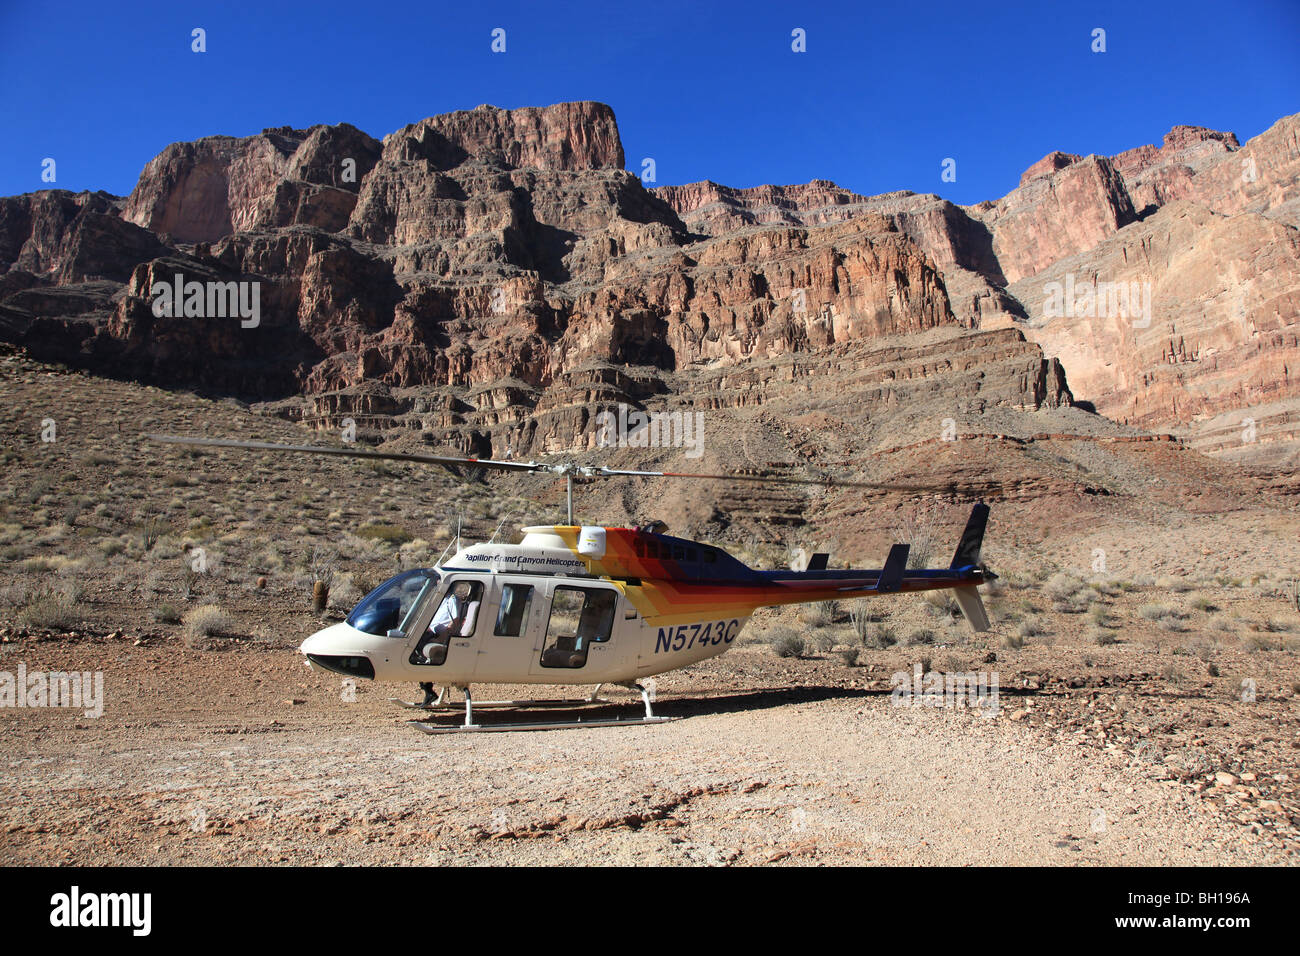 Helicopter landed in the Grand Canyon, Arizona, USA - Stock Image